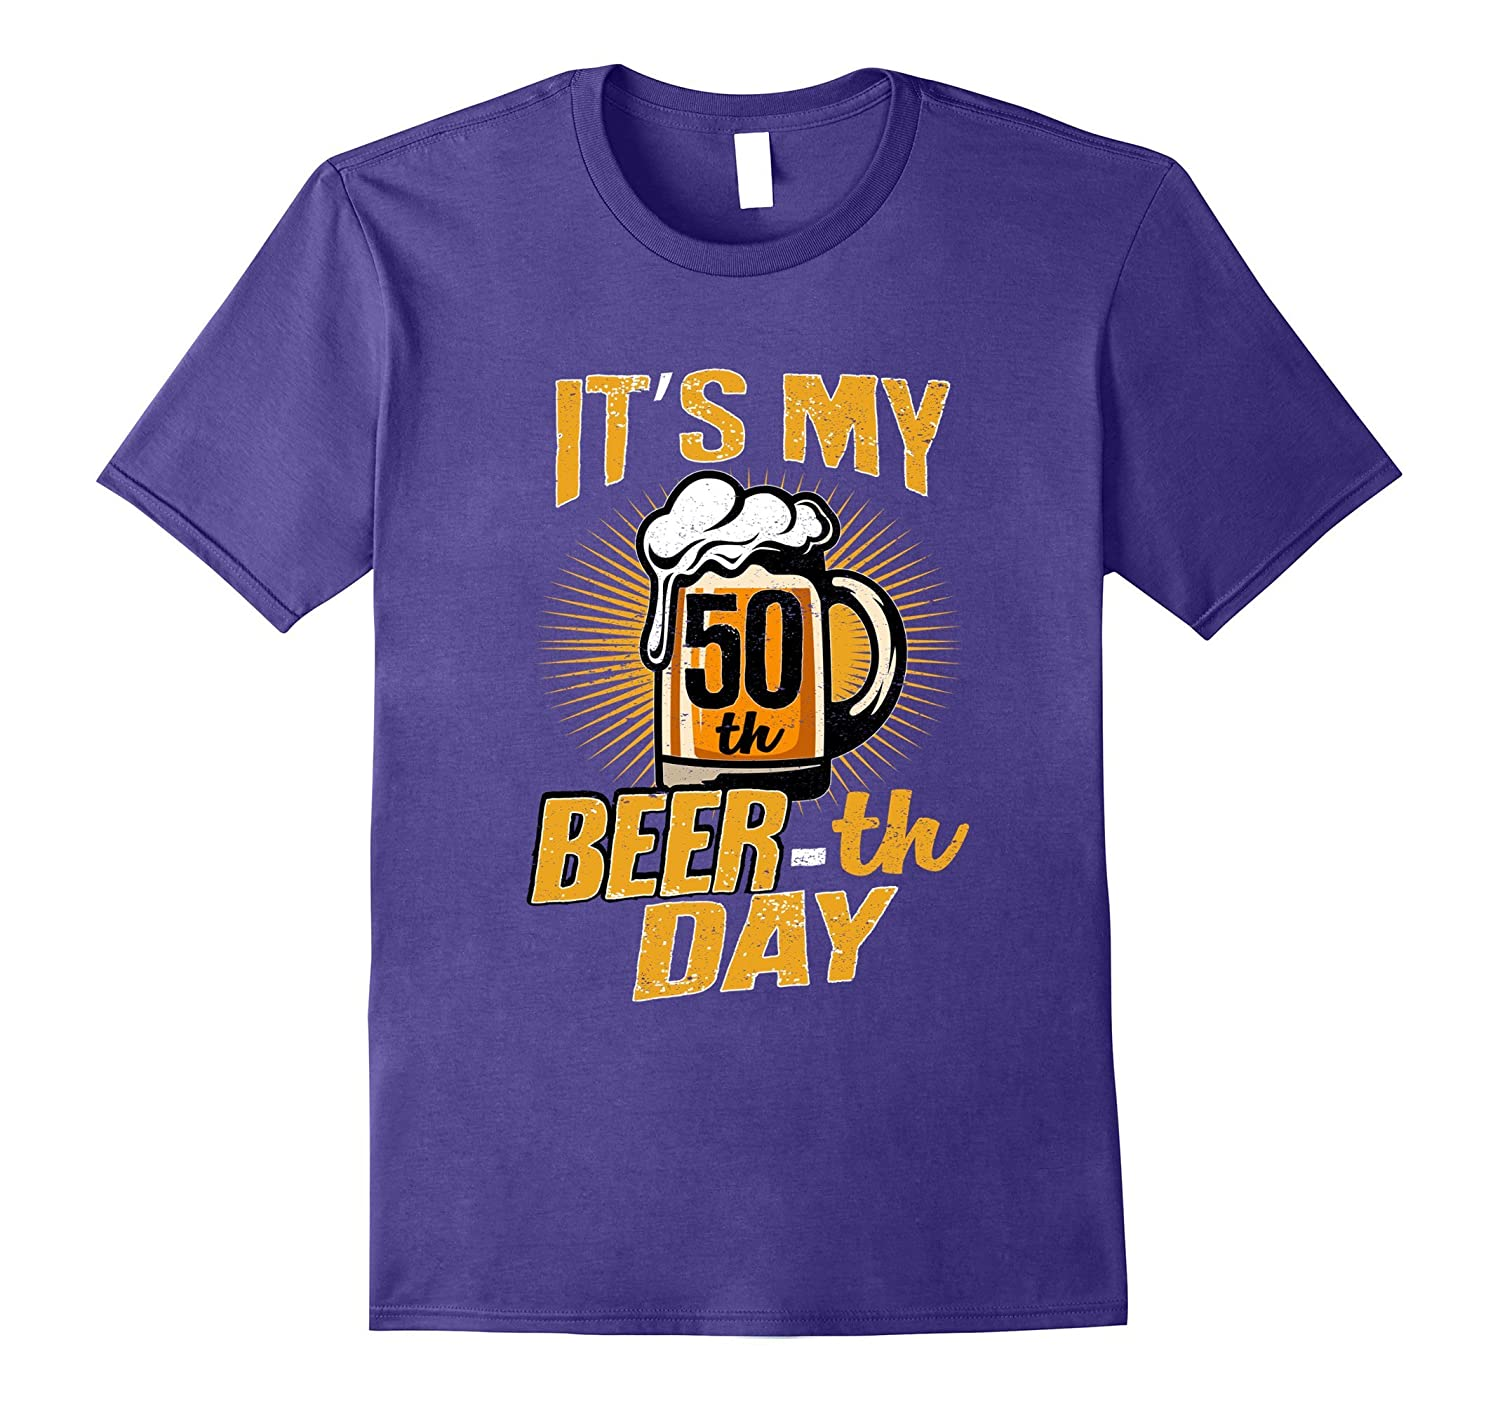 50th Beer-th Day Funny Birthday Beer Pun T-Shirt Vintage